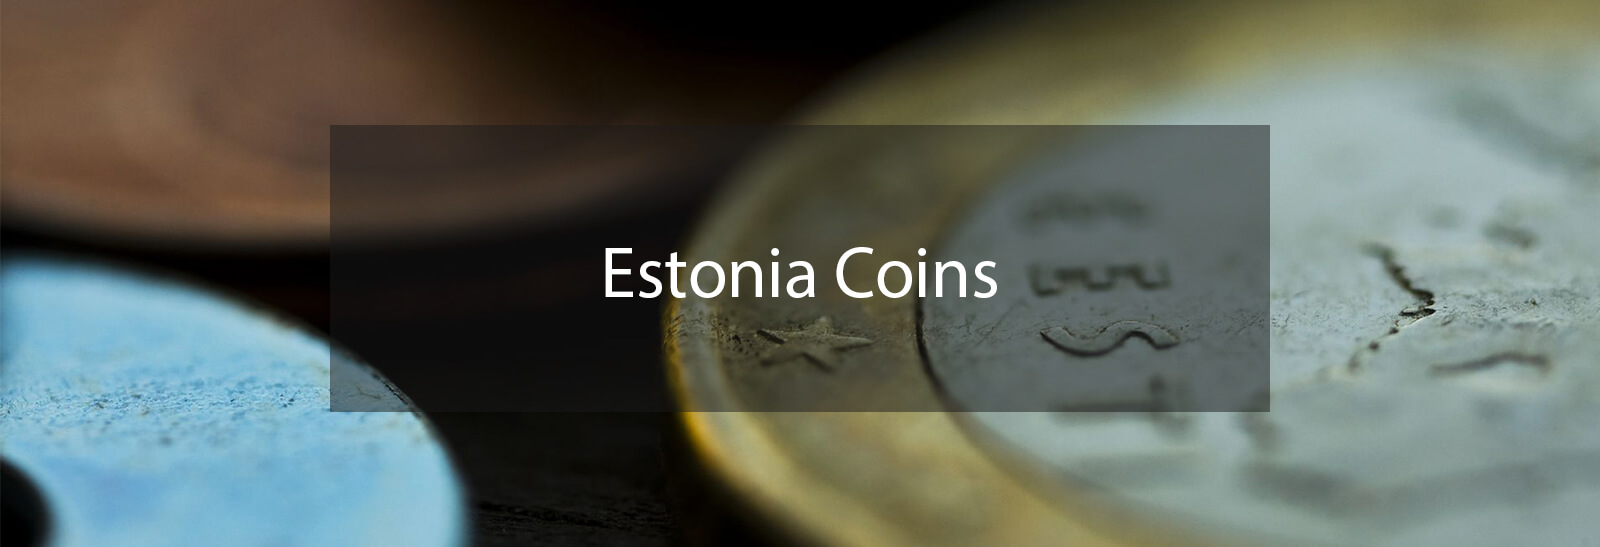 Estonia coins